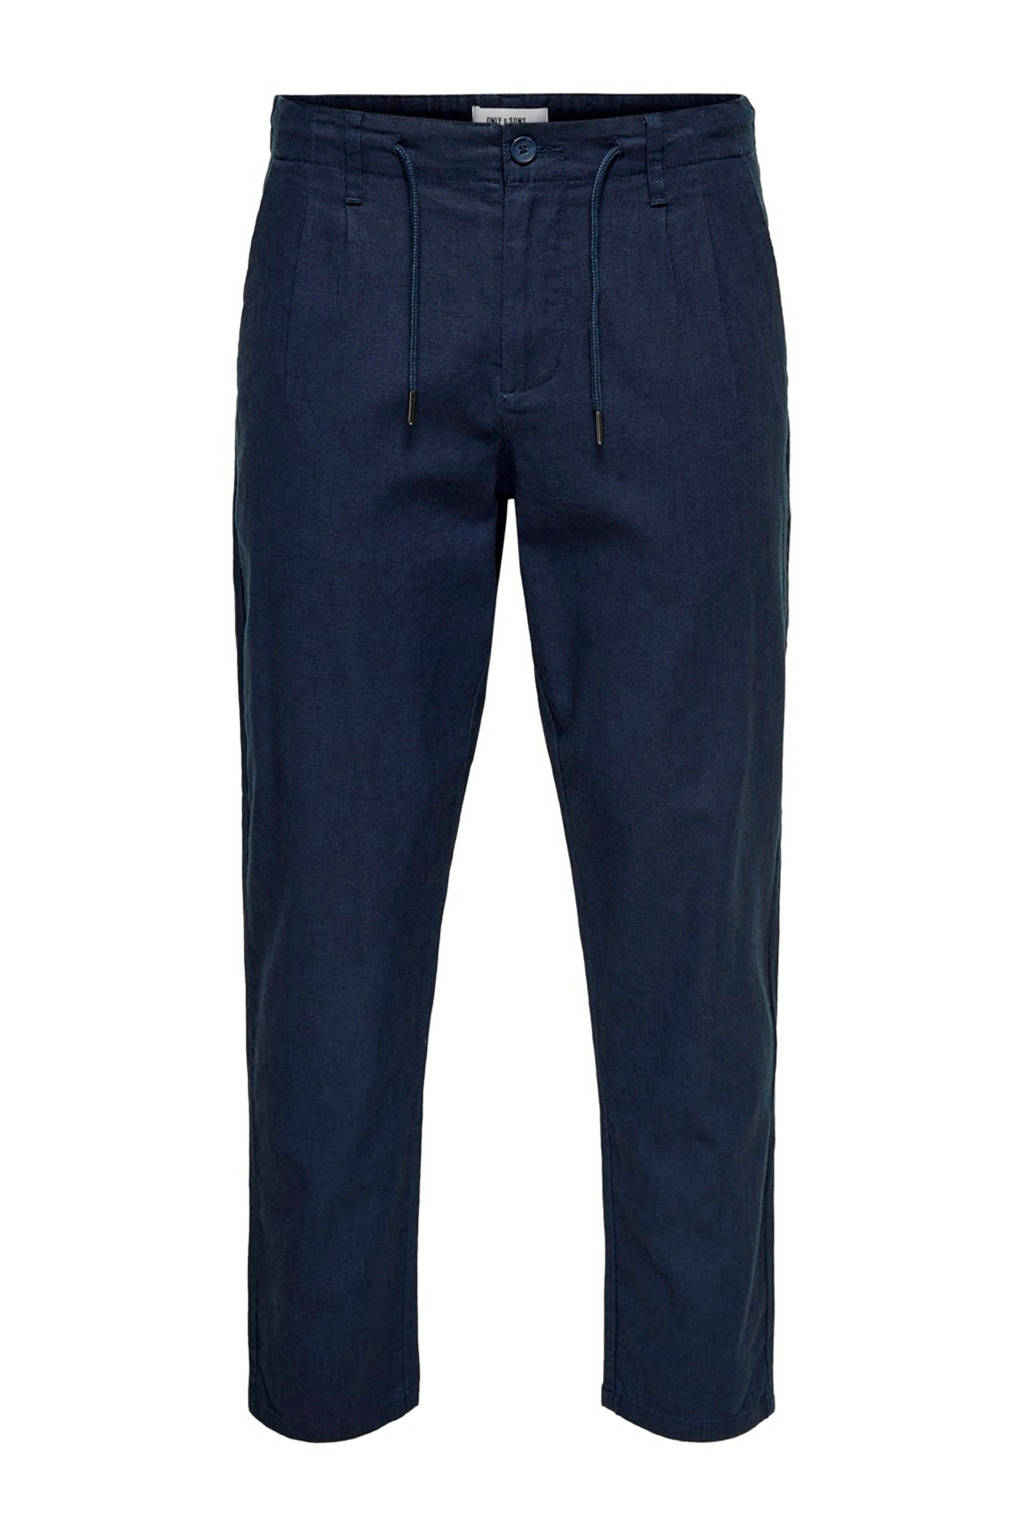 Only & Sons relaxed fit chino donkerblauw, Donkerblauw